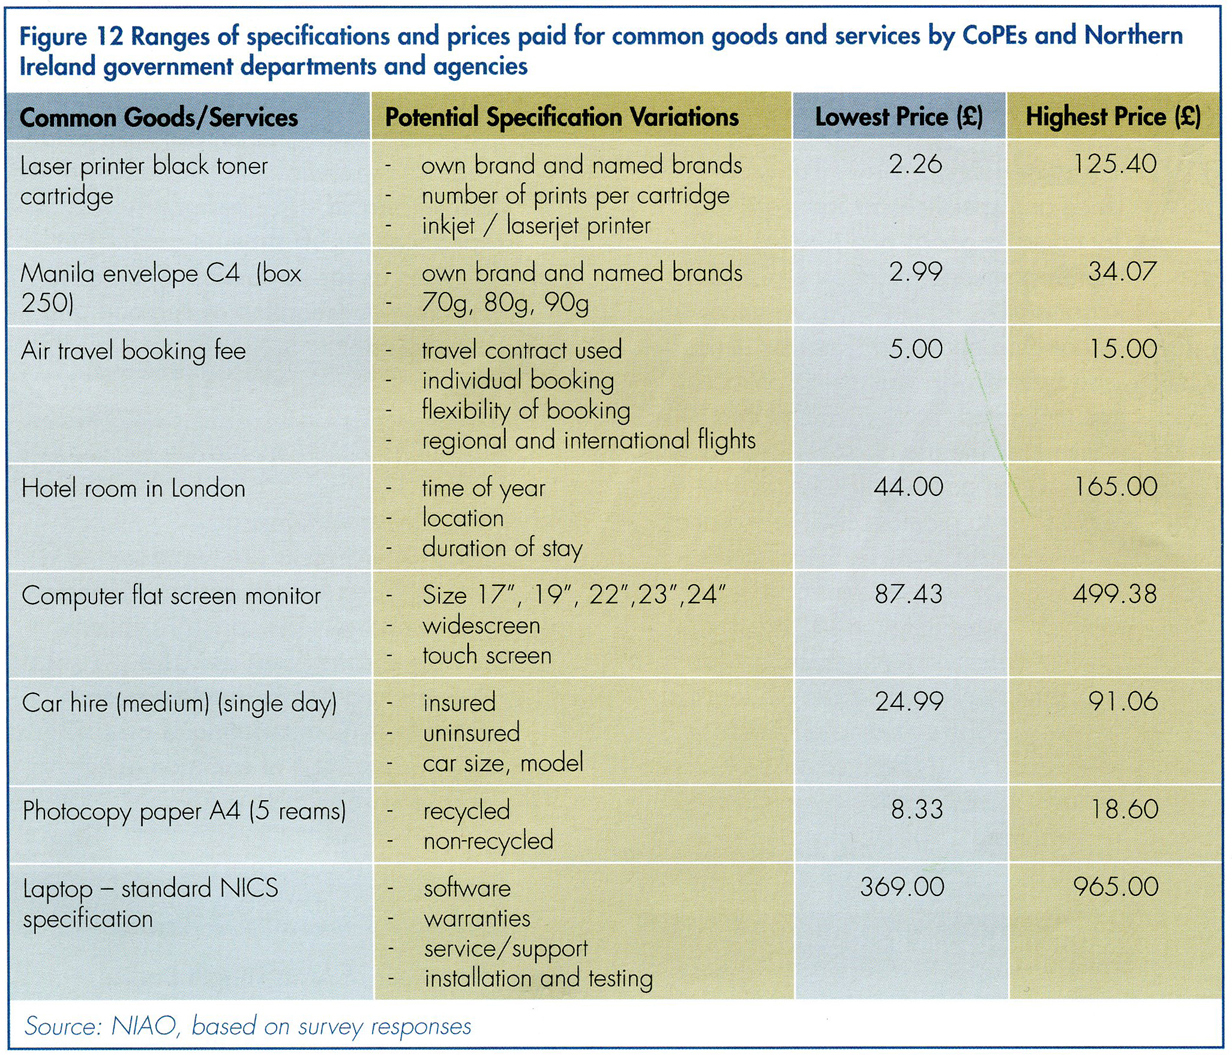 Comparison of prices paid by government departments for public services